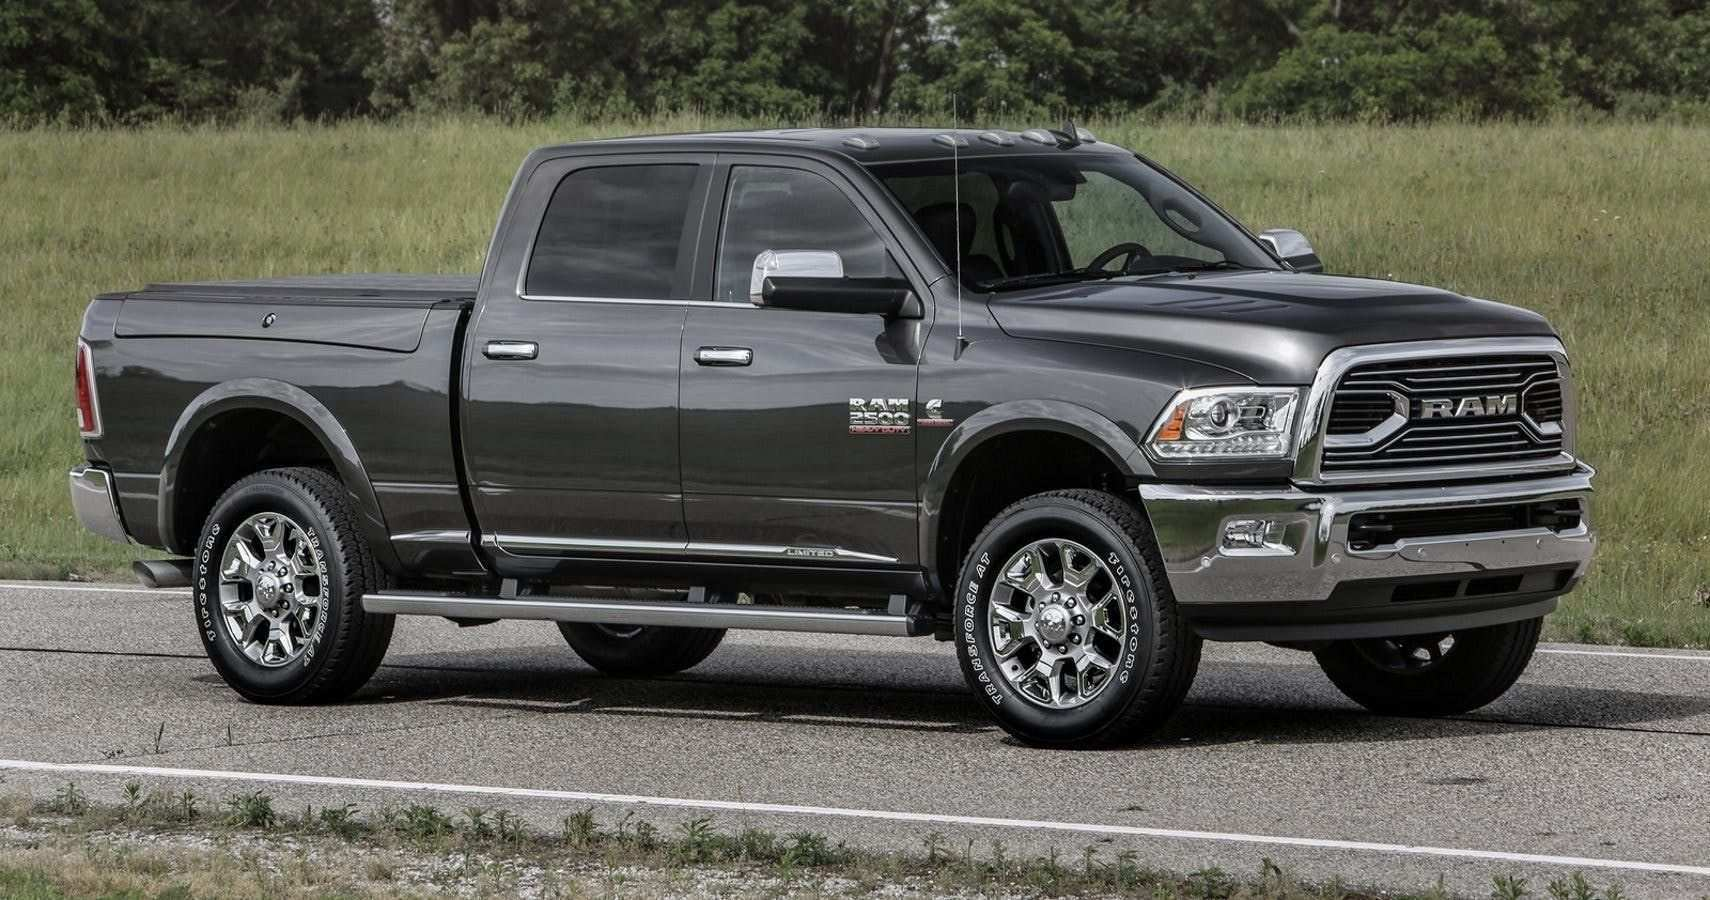 15 All New 2020 Dodge Ram 2500 Exterior and Interior for 2020 Dodge Ram 2500